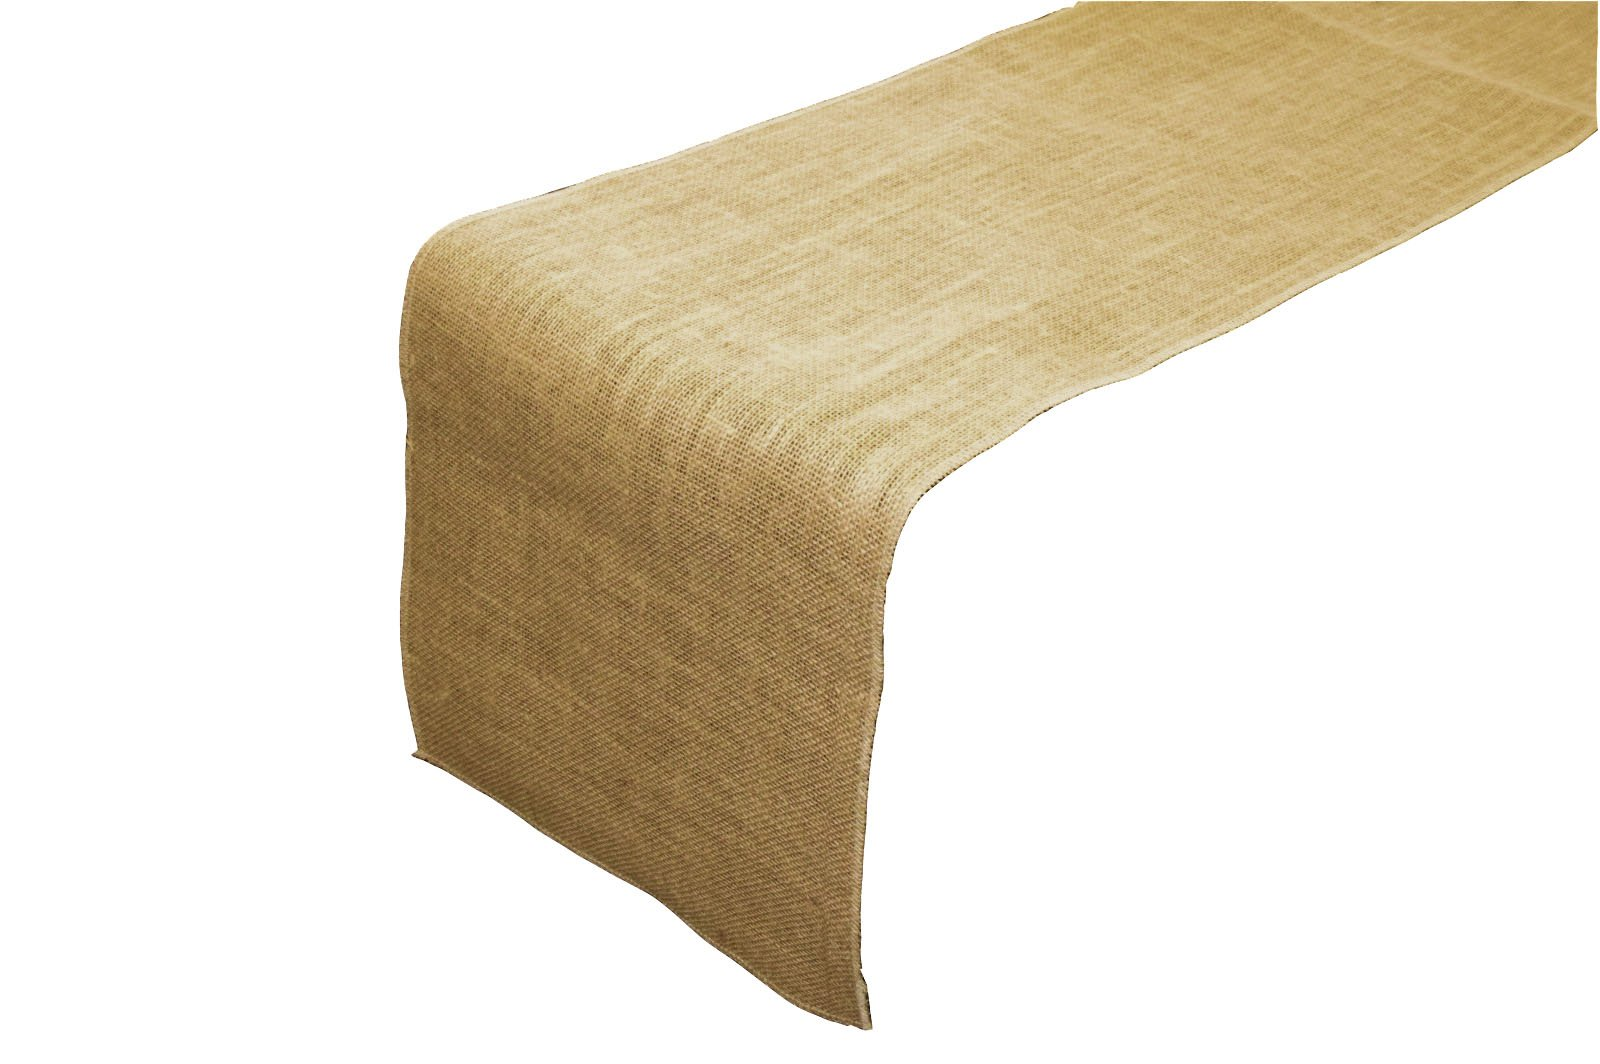 LA Linen Natural Burlap Table Runner, 14 by 108-Inch, 12-Pack